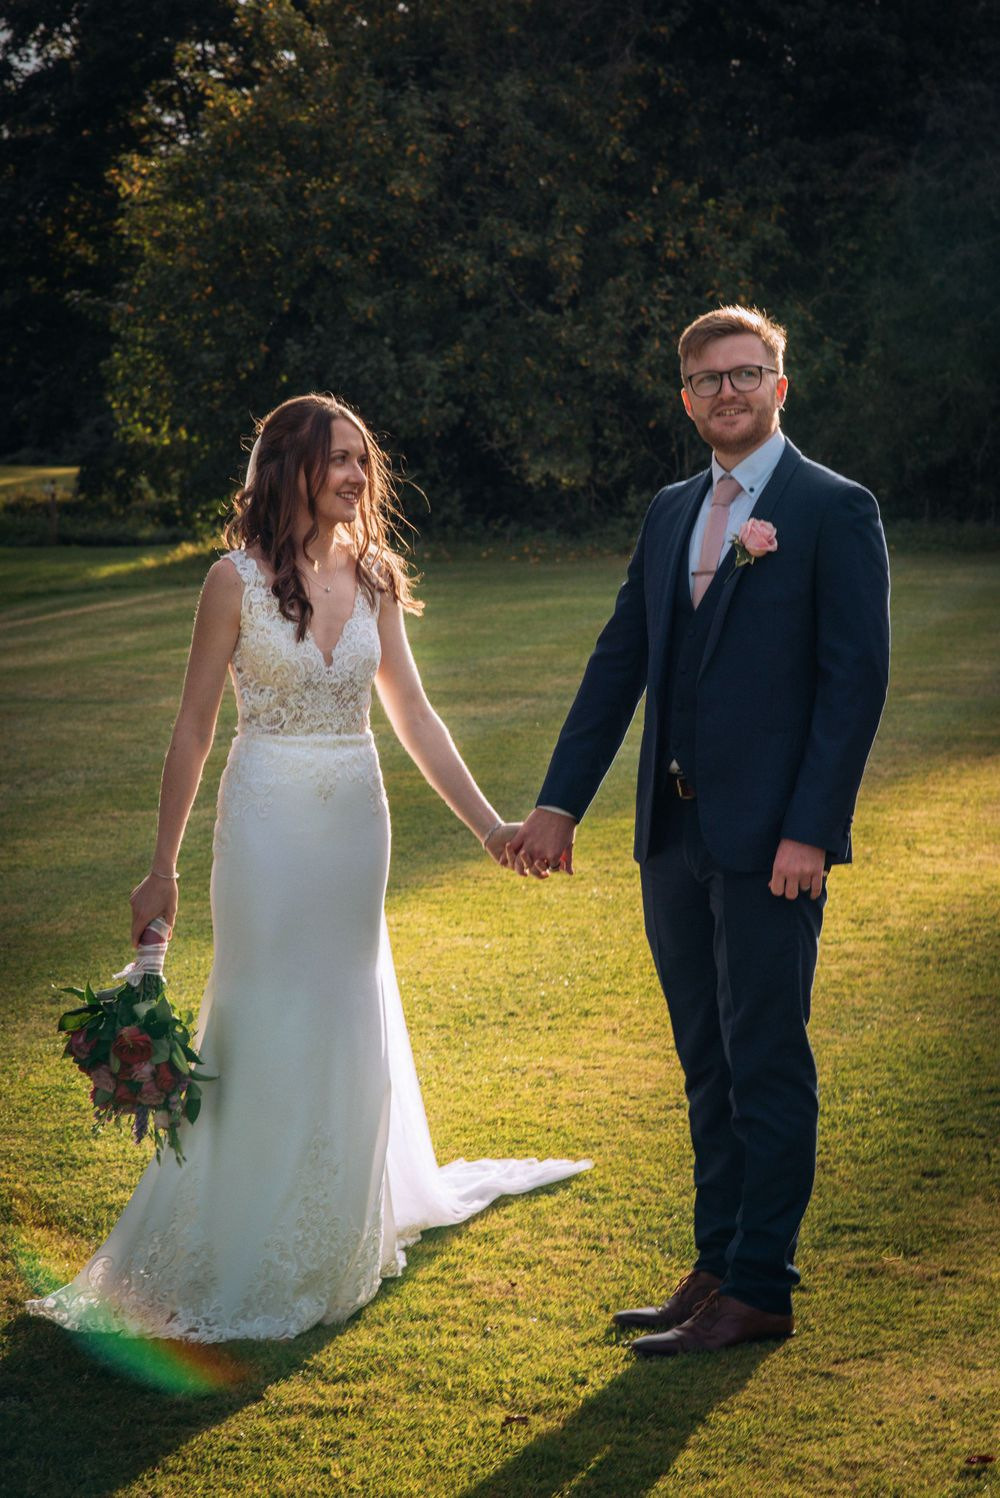 Cricklade House Hotel wedding by Zara Davis Photography, Gloucestershire golden hour rays